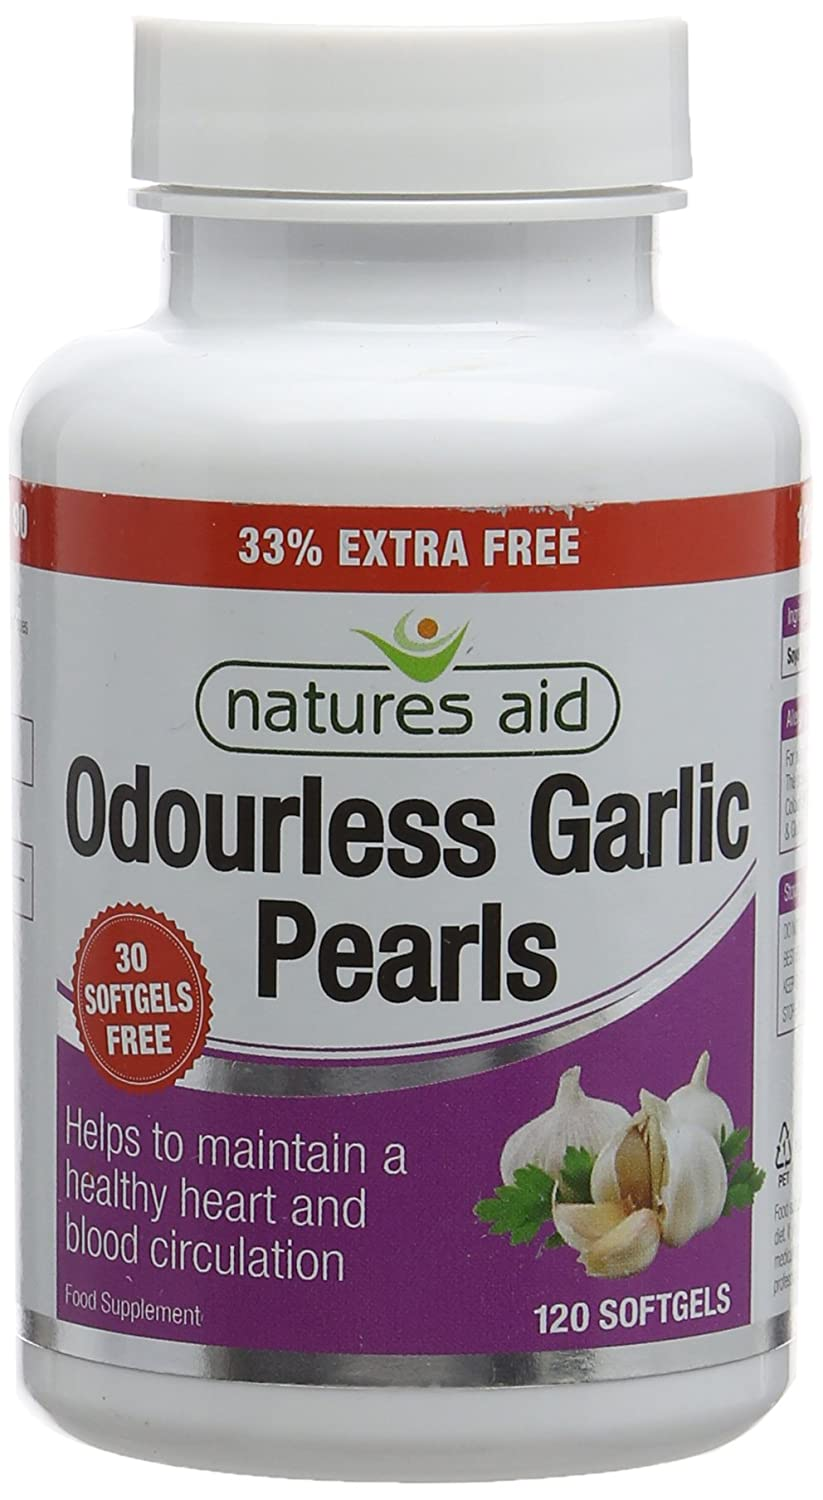 Natures Aid Odourless Garlic Pearls, 120 Softgel Capsules (One-a-Day, to  Help Maintain a Healthy Heart and Blood Circulation, Made in the UK)